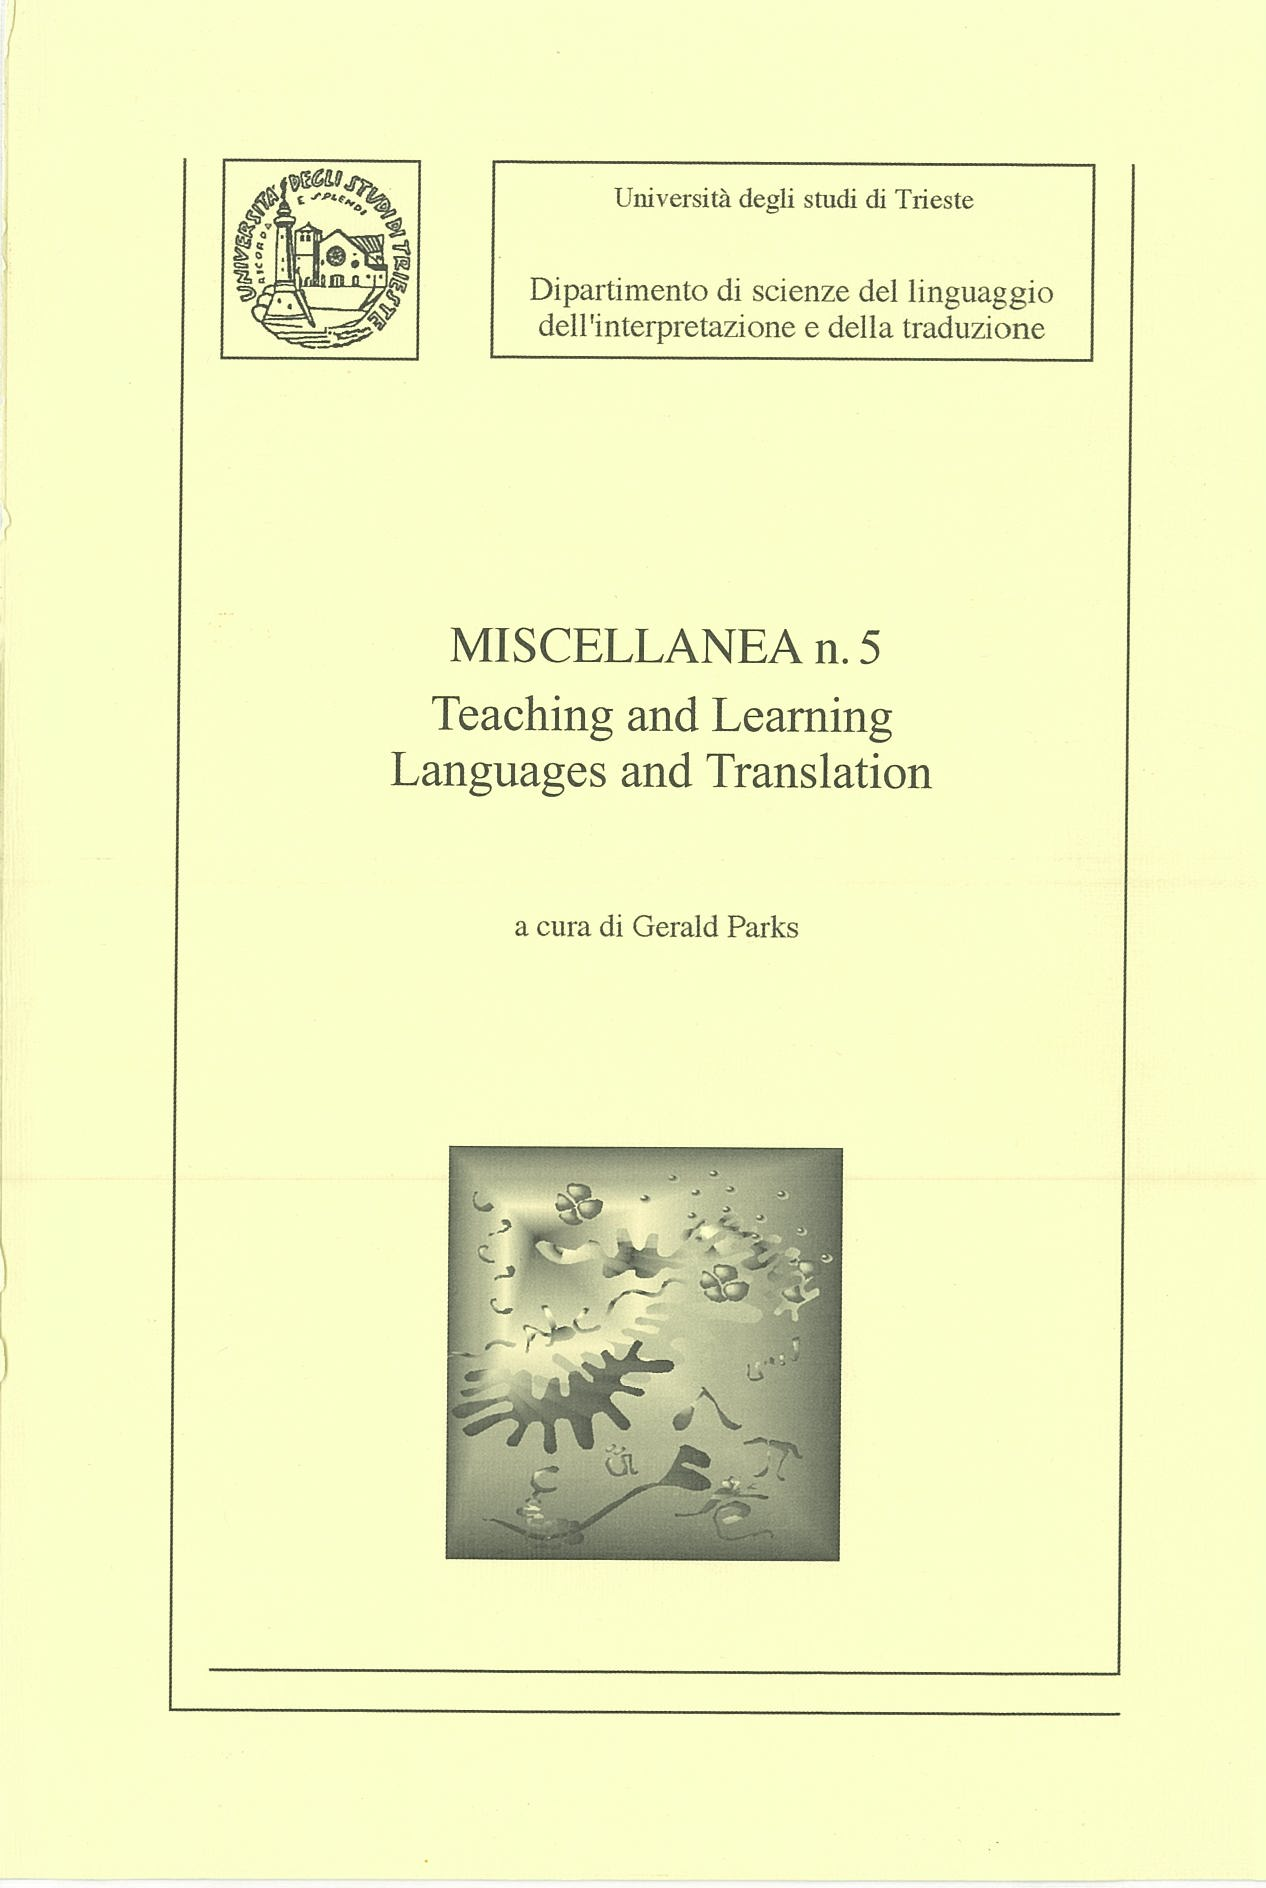 Miscellanea n. 5: Teaching and Learning Languages and Translation